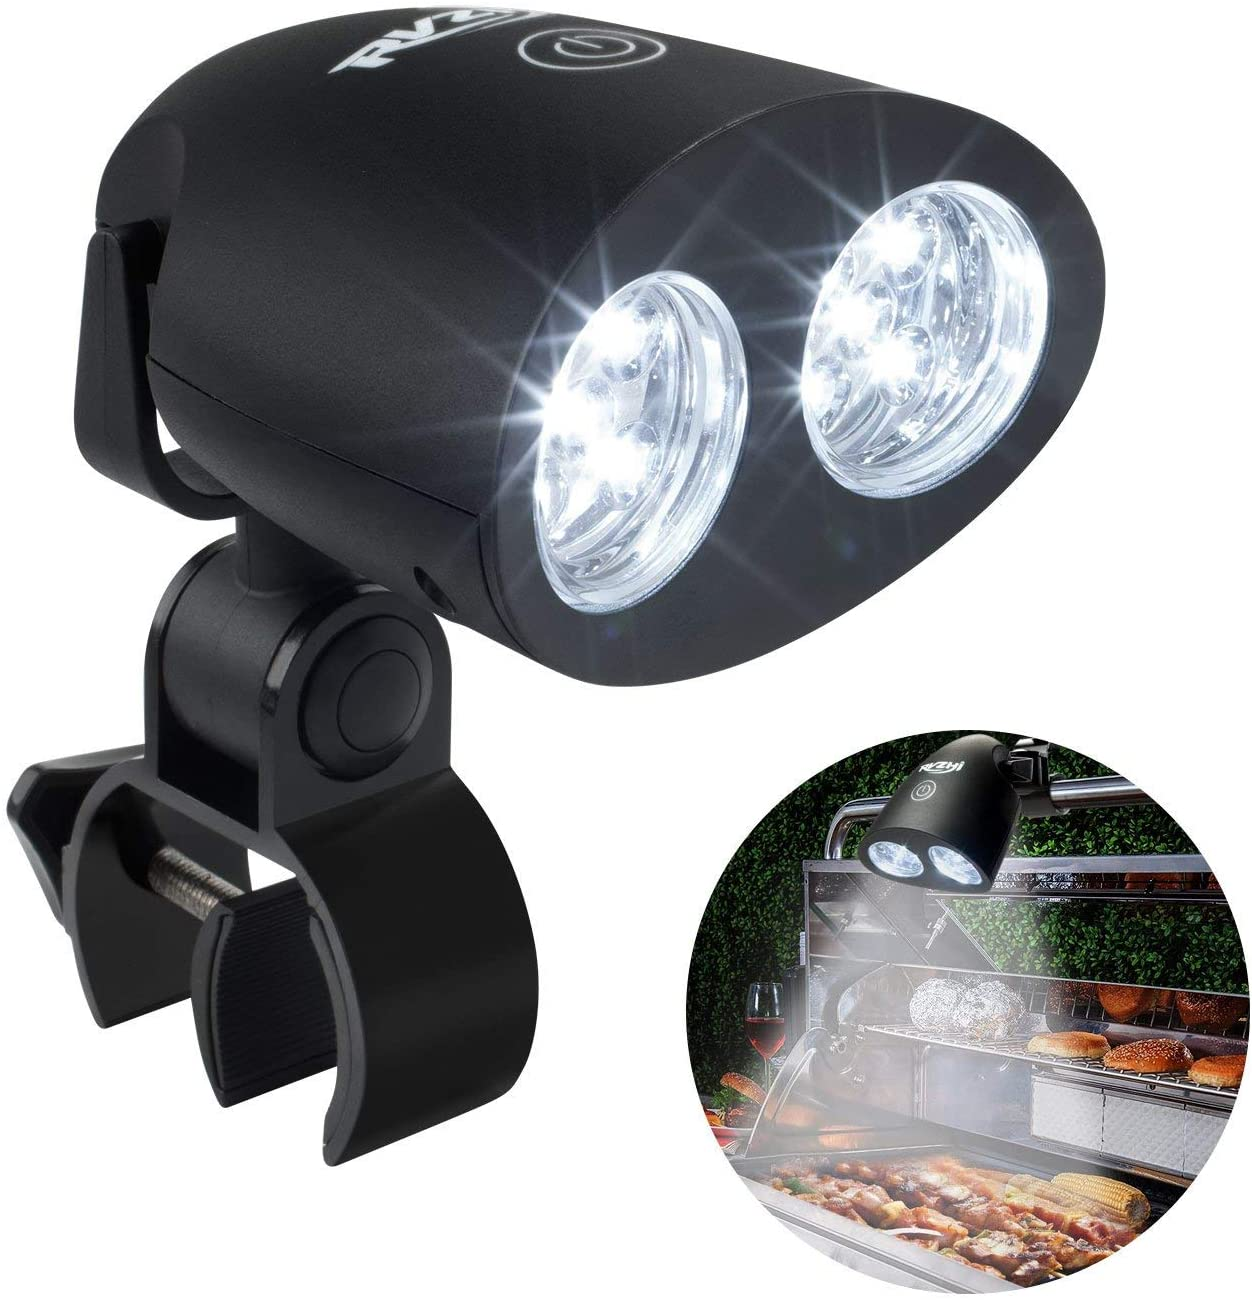 RVZHI Barbecue Grill Light, Outdoor 360 Degree Flexible BBQ Light with 10 Super Bright LED Lights, Heat Resistant Night Grill Light with Sturdy Clamp Mount Fits Most Grill Handle, Batteries Included : Patio, Lawn & Garden